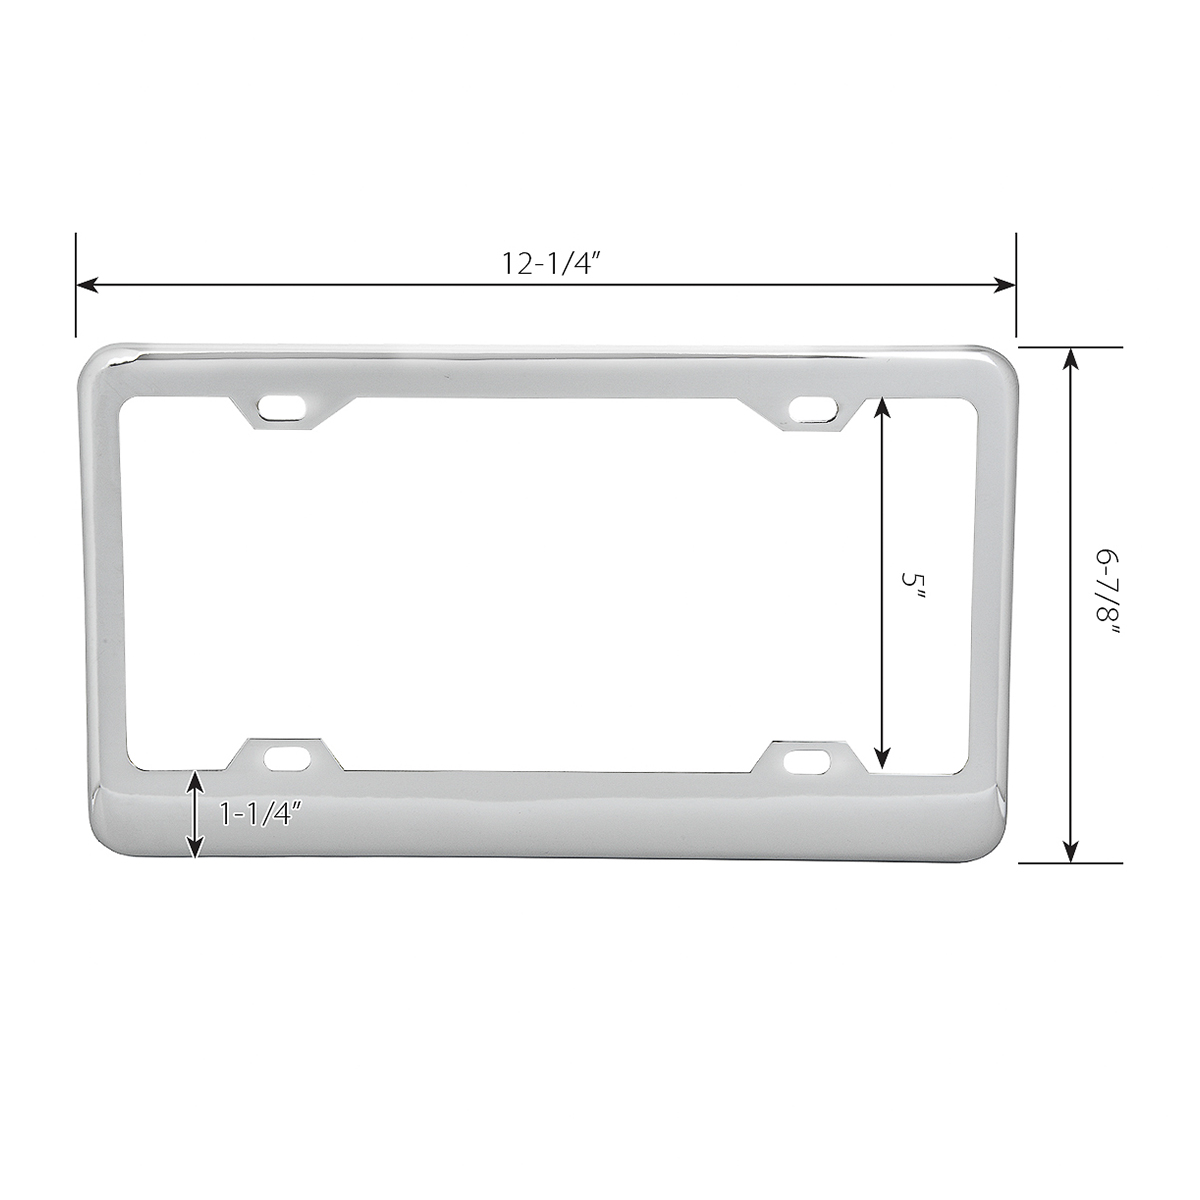 60050 Classic Chrome Plastic Steel 4-Hole License Plate Frames - Measurement